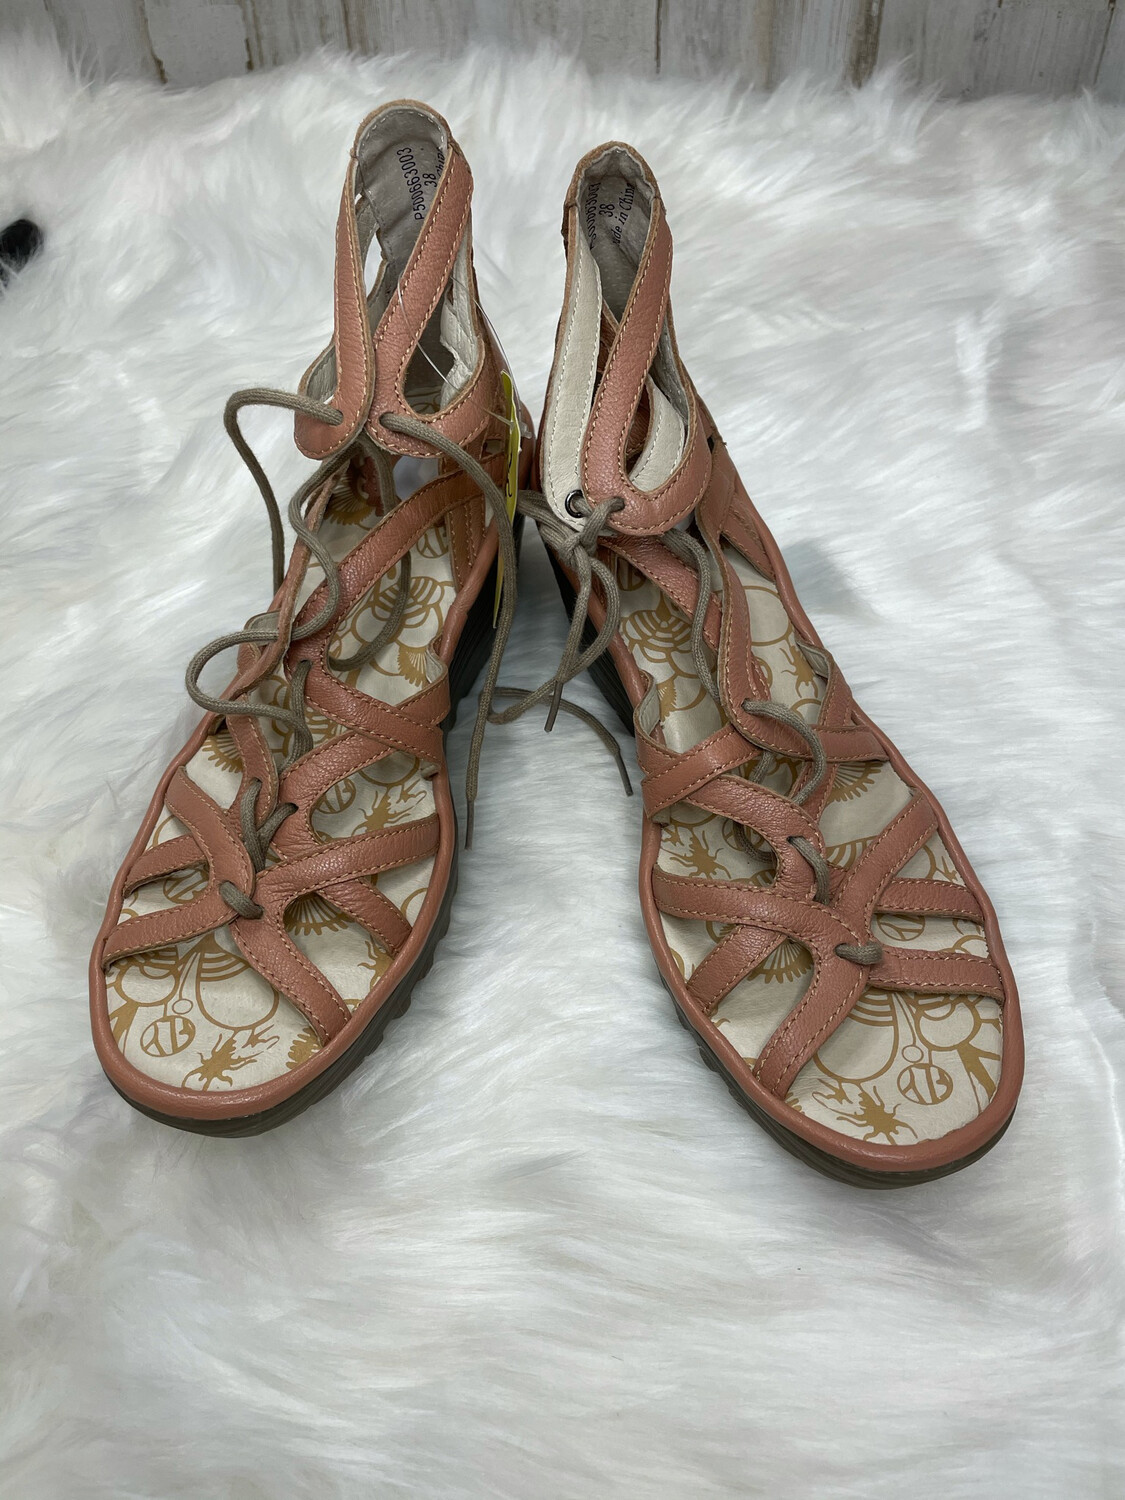 Fly London Pink Leather Lace Up Wedge Sandals - Size 9